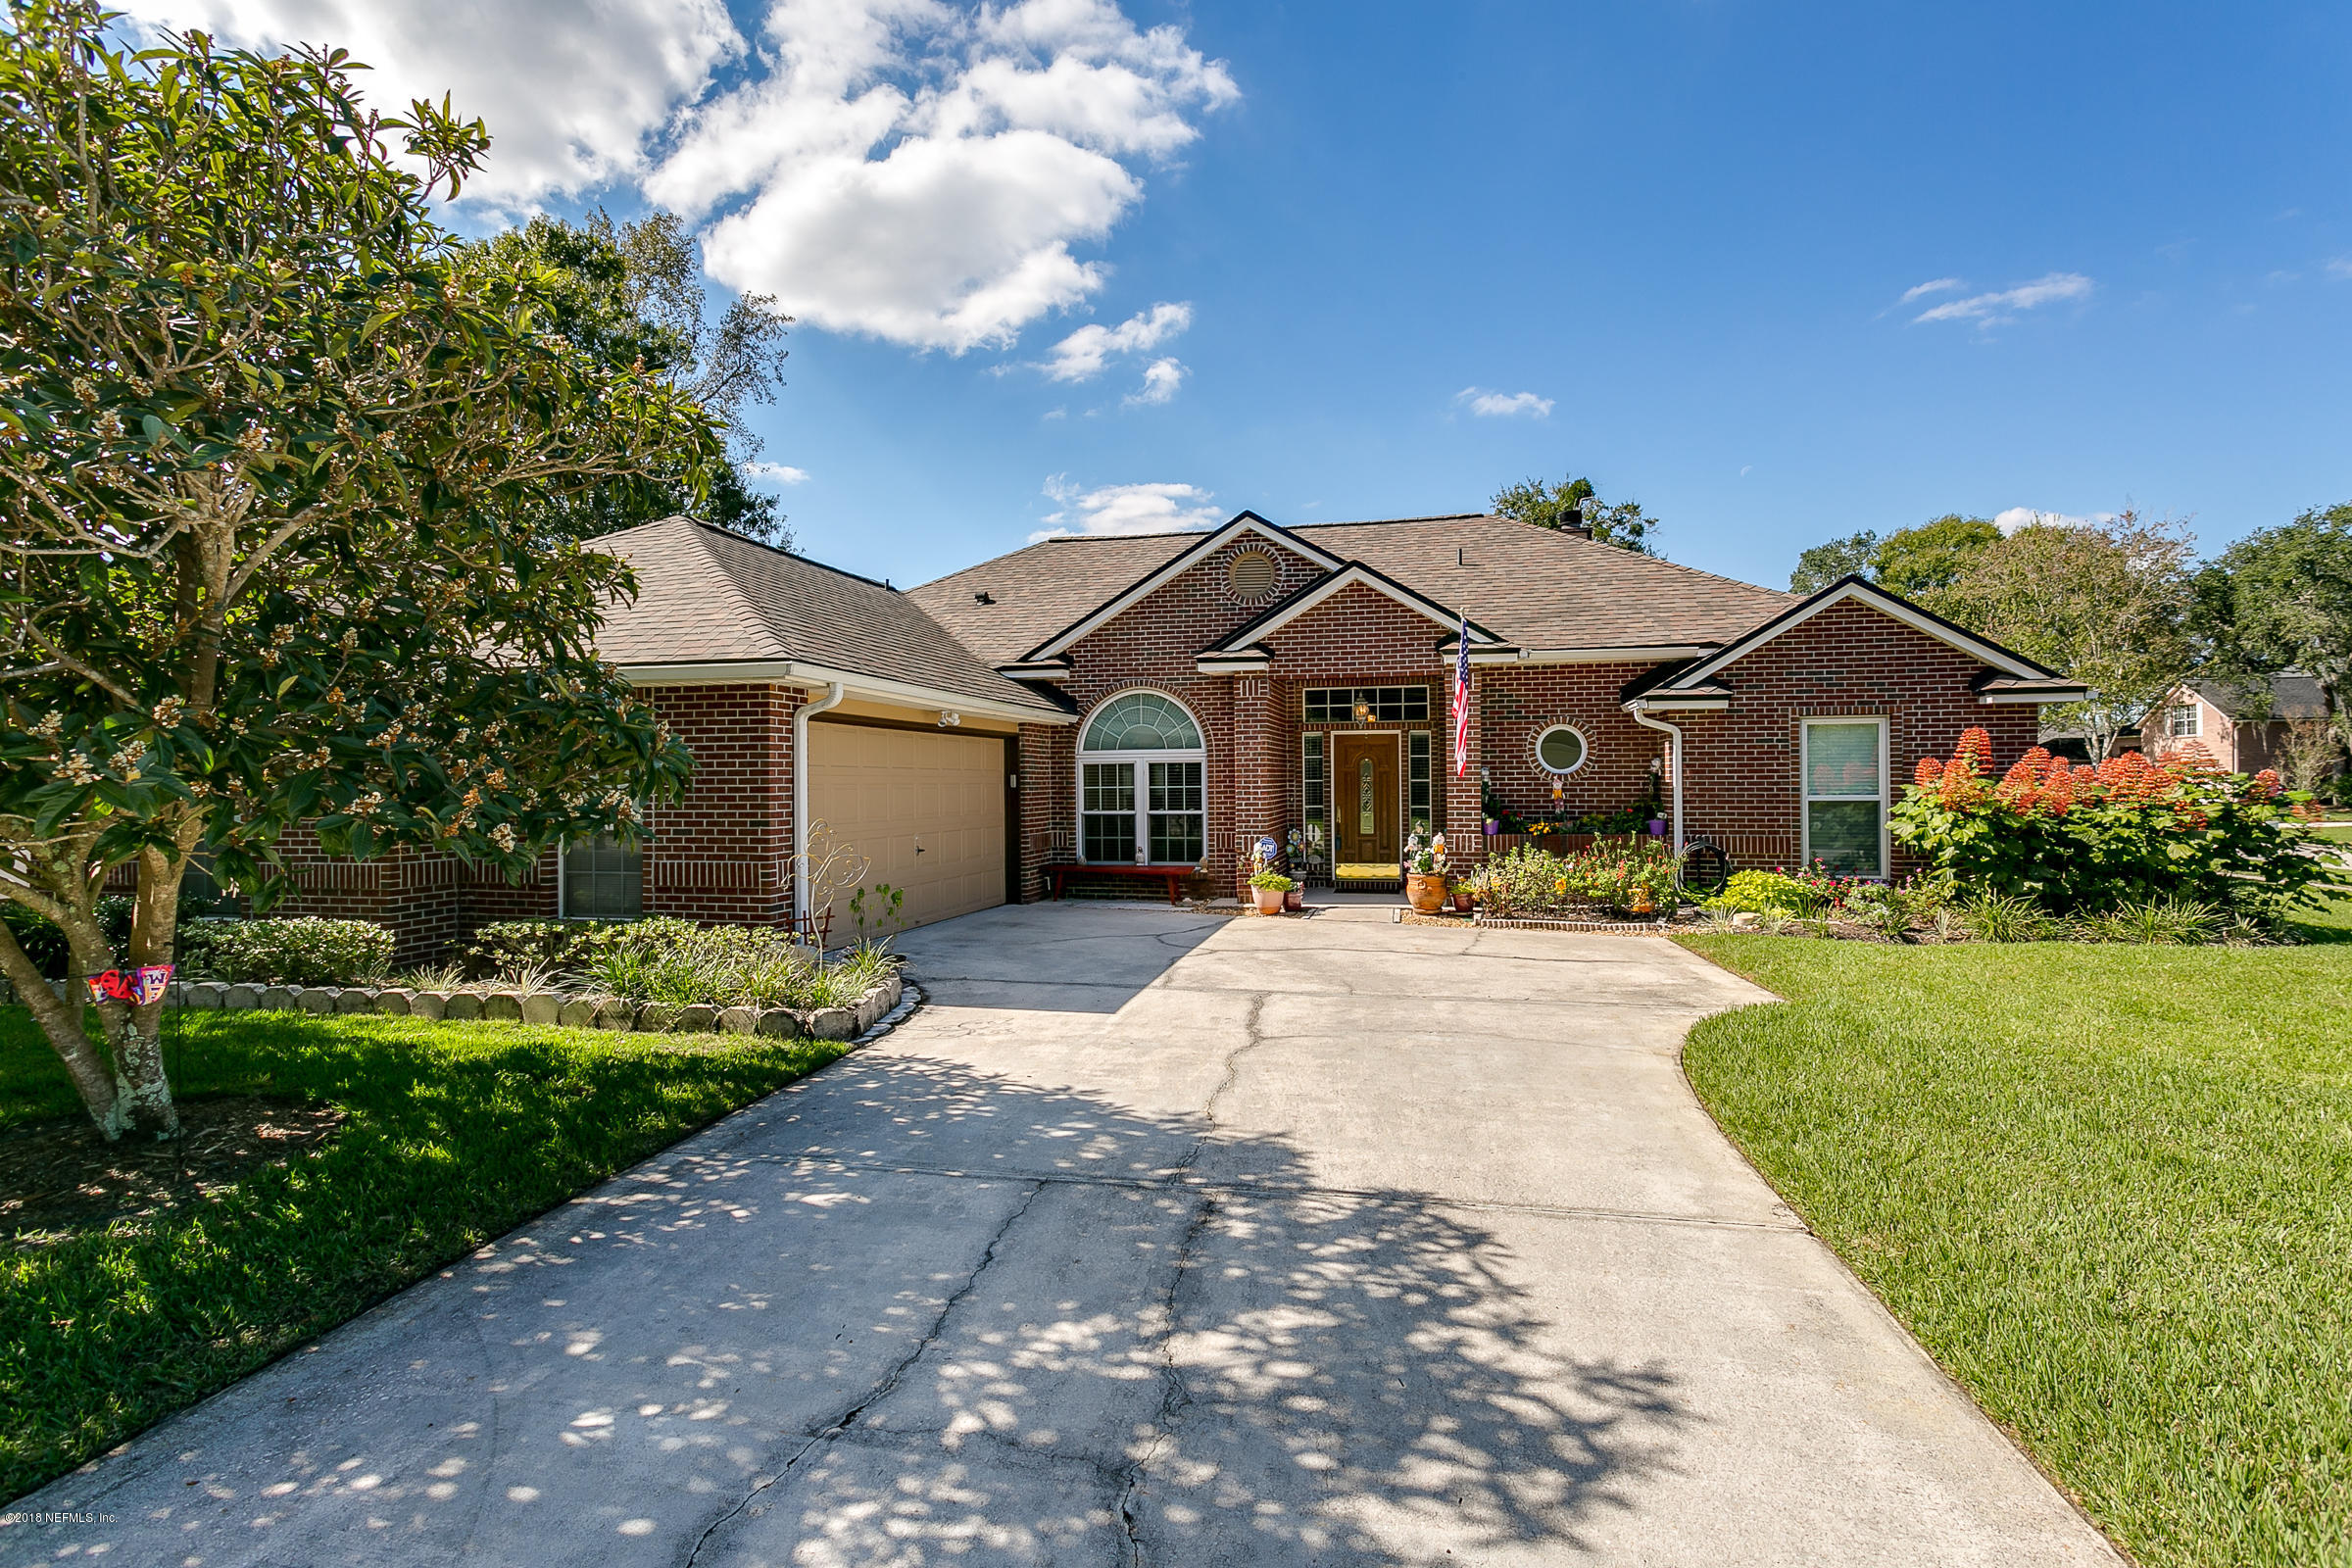 1536 WHITEHALL, FLEMING ISLAND, FLORIDA 32003, 3 Bedrooms Bedrooms, ,2 BathroomsBathrooms,Residential - single family,For sale,WHITEHALL,970062